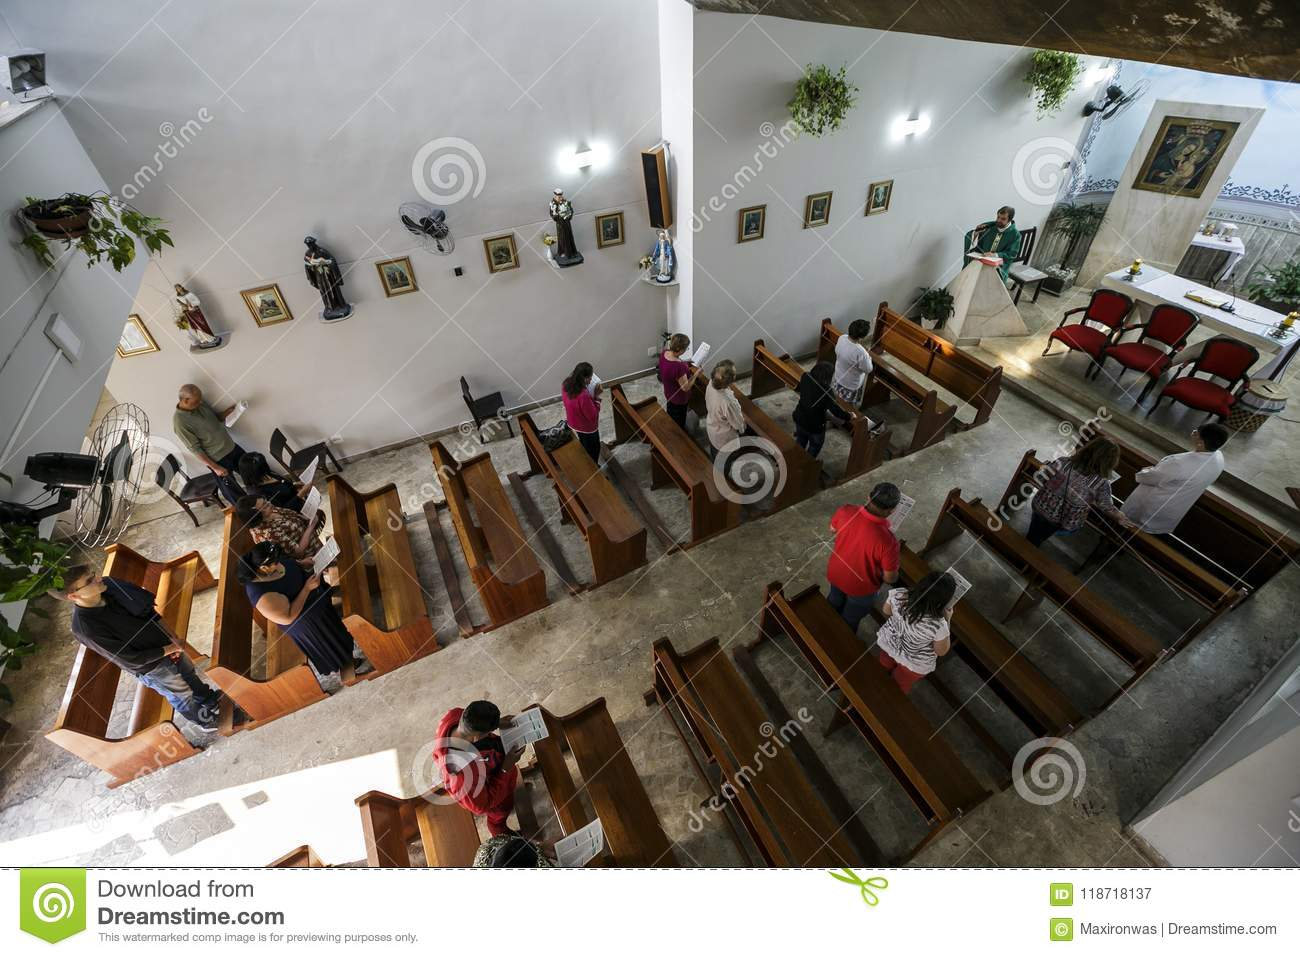 Brasil - San Paolo - The ONG Sermig - catholic mass for voluntaryes